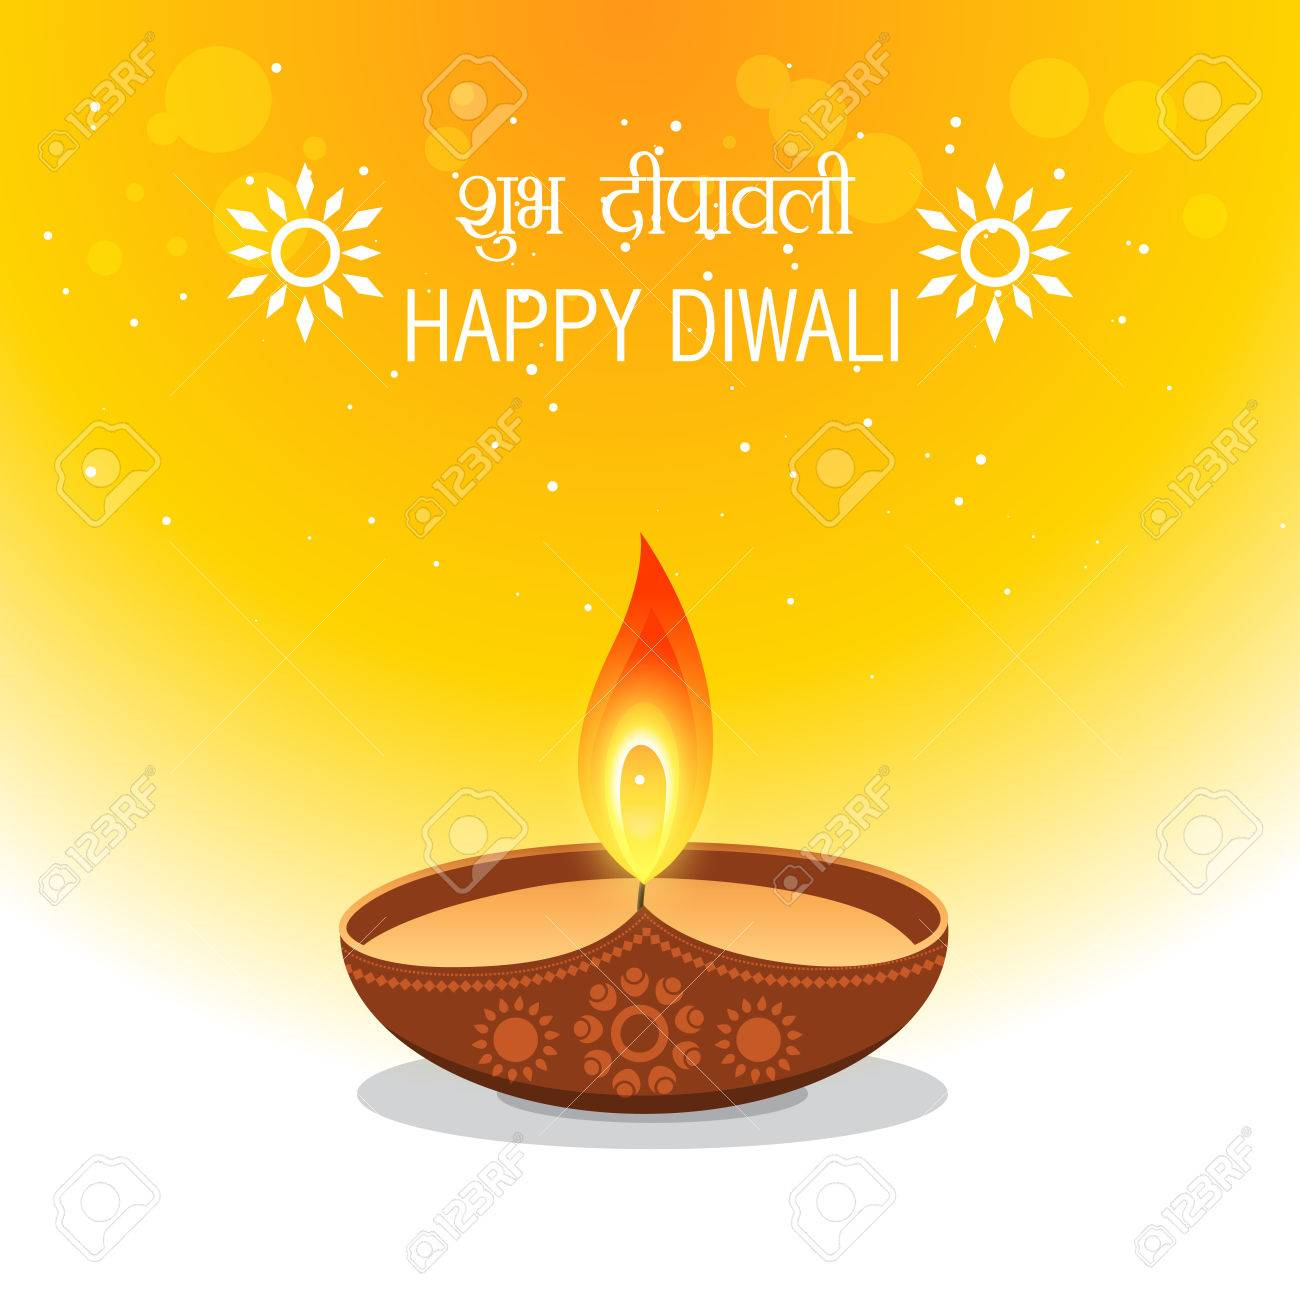 Happy Diwali Wishes Greetings Illustration Royalty Free Cliparts